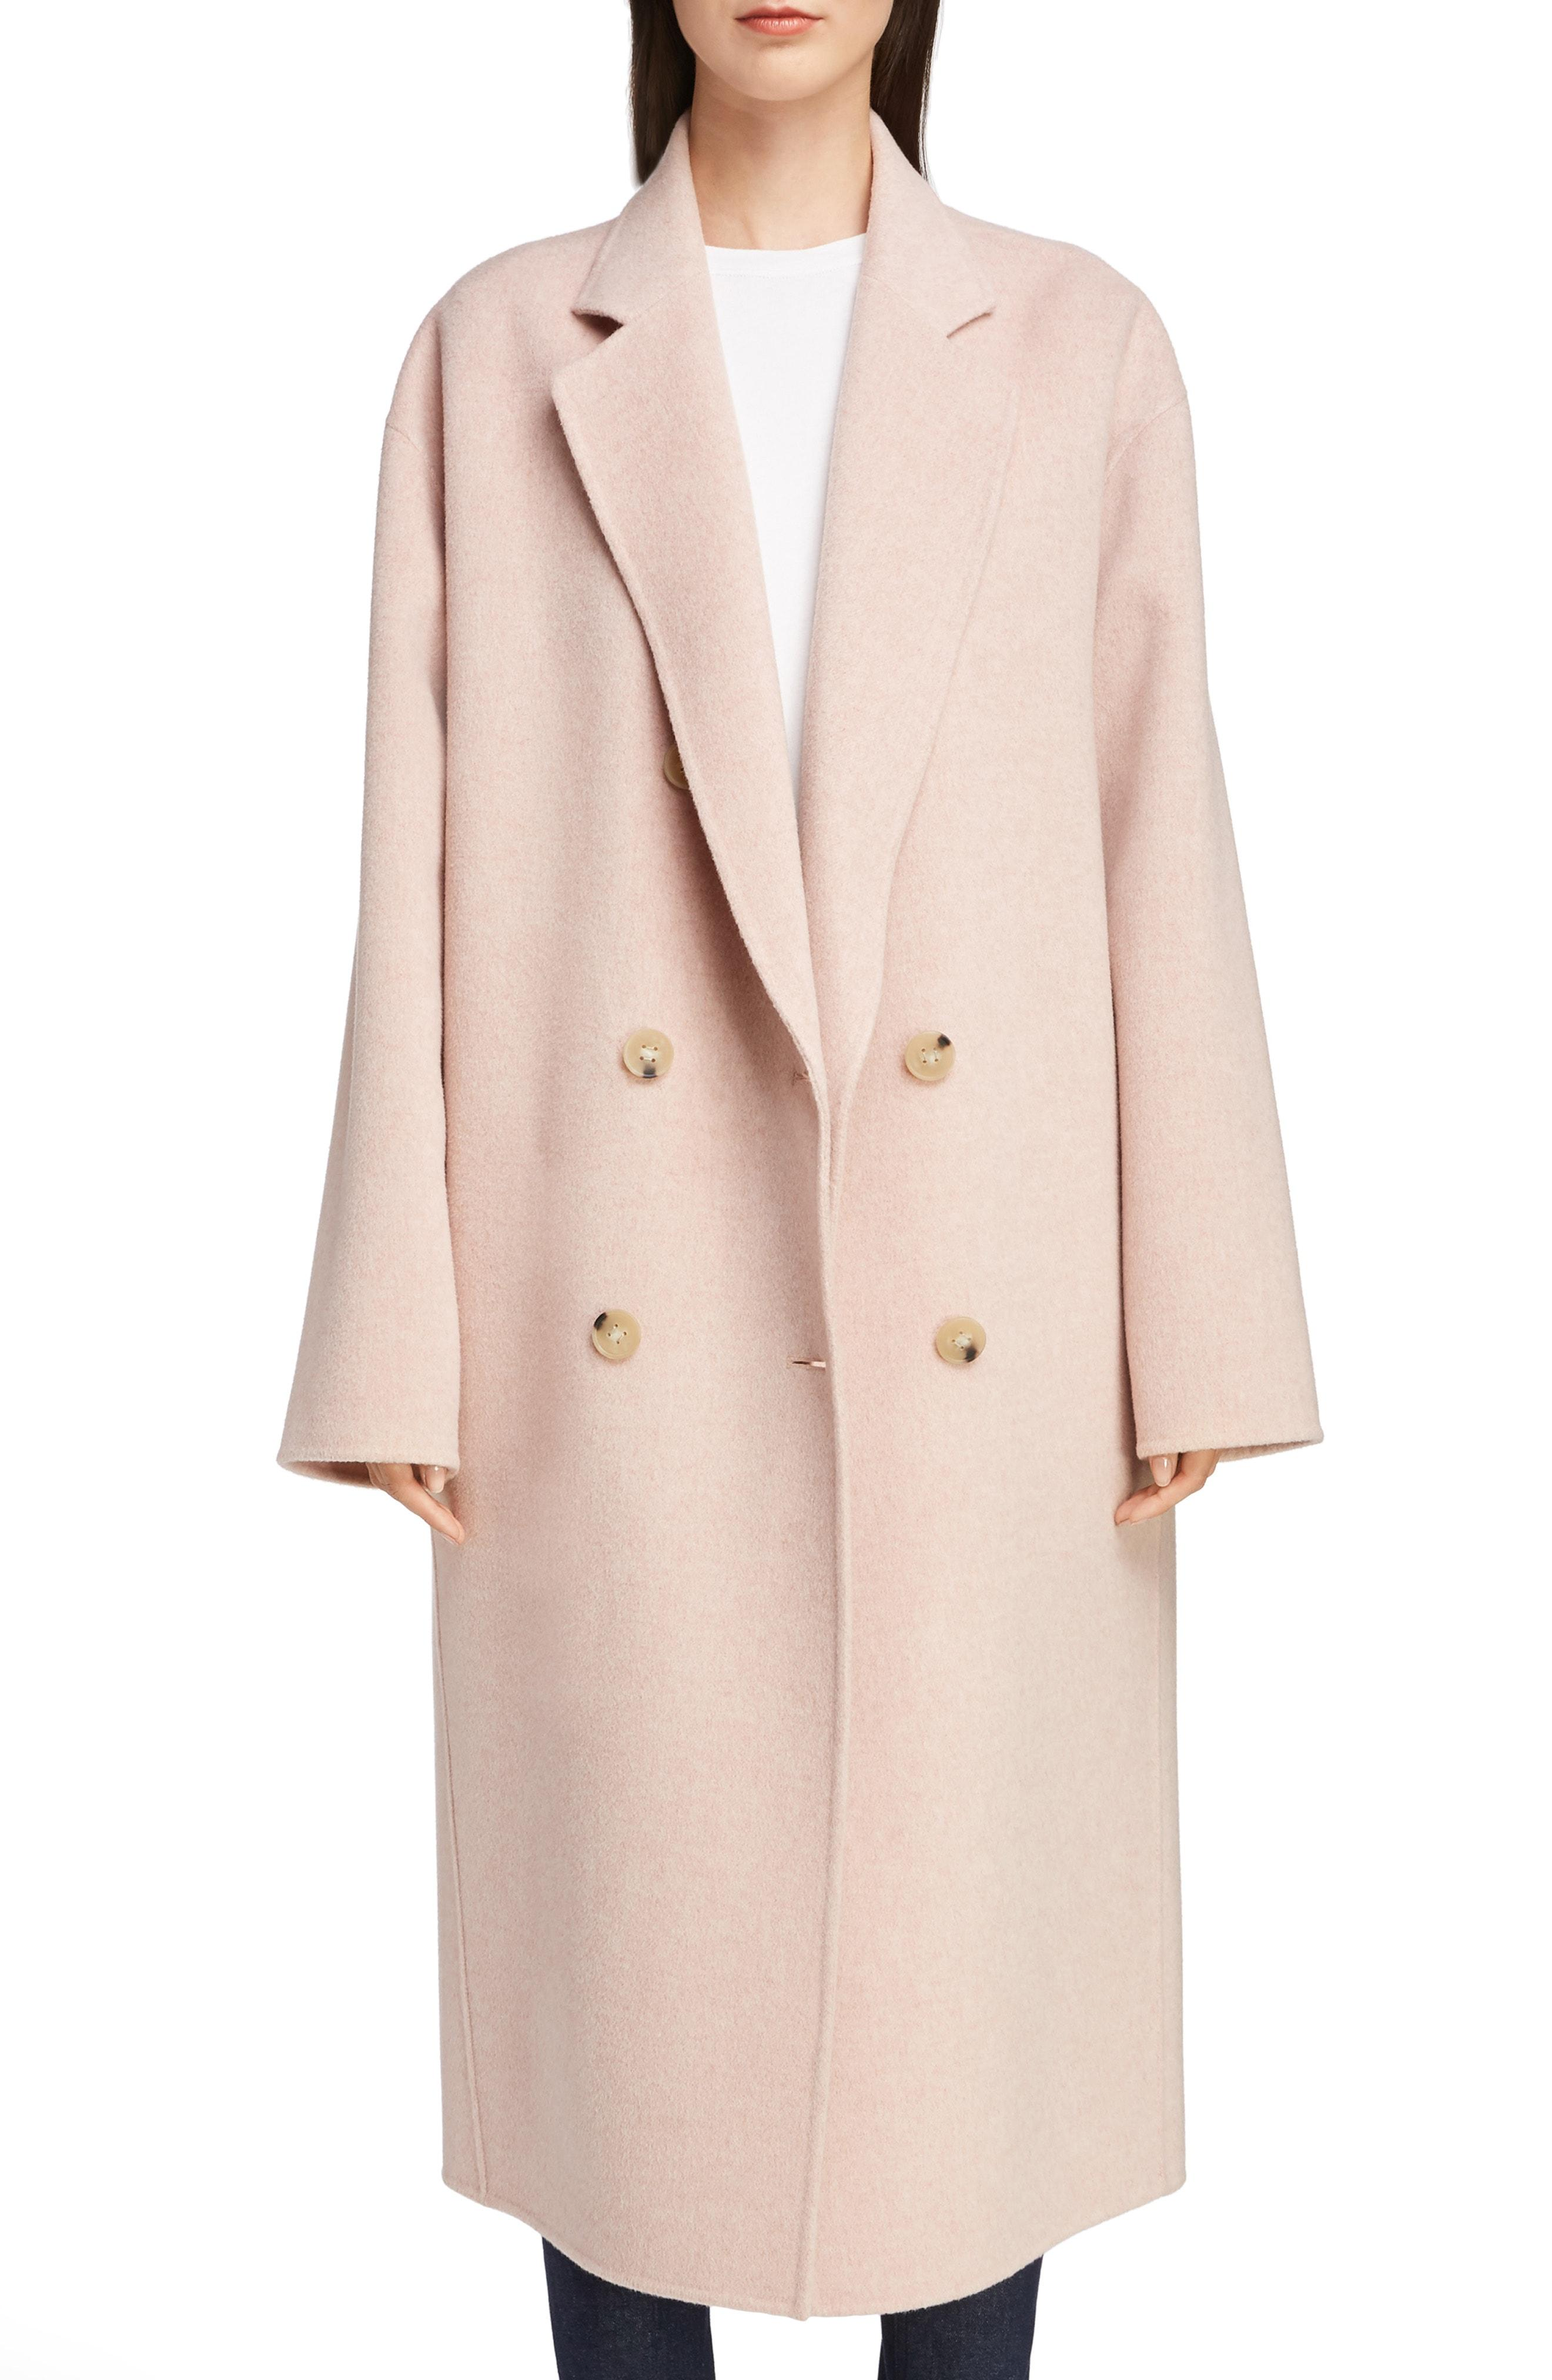 bccca964bf1 Lyst - Acne Studios Odethe Double Breasted Wool   Cashmere Coat in Pink